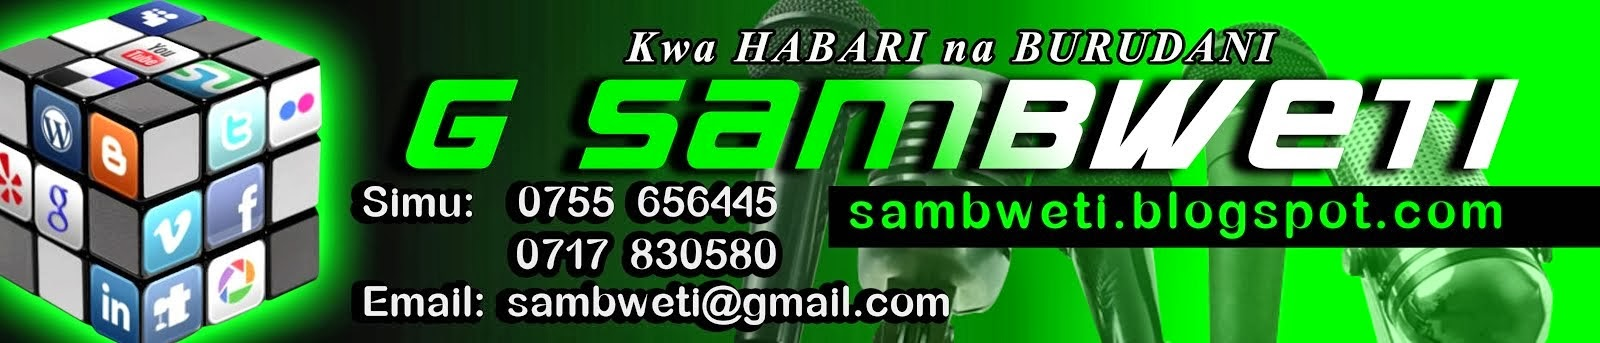 SAMBWETI official blog